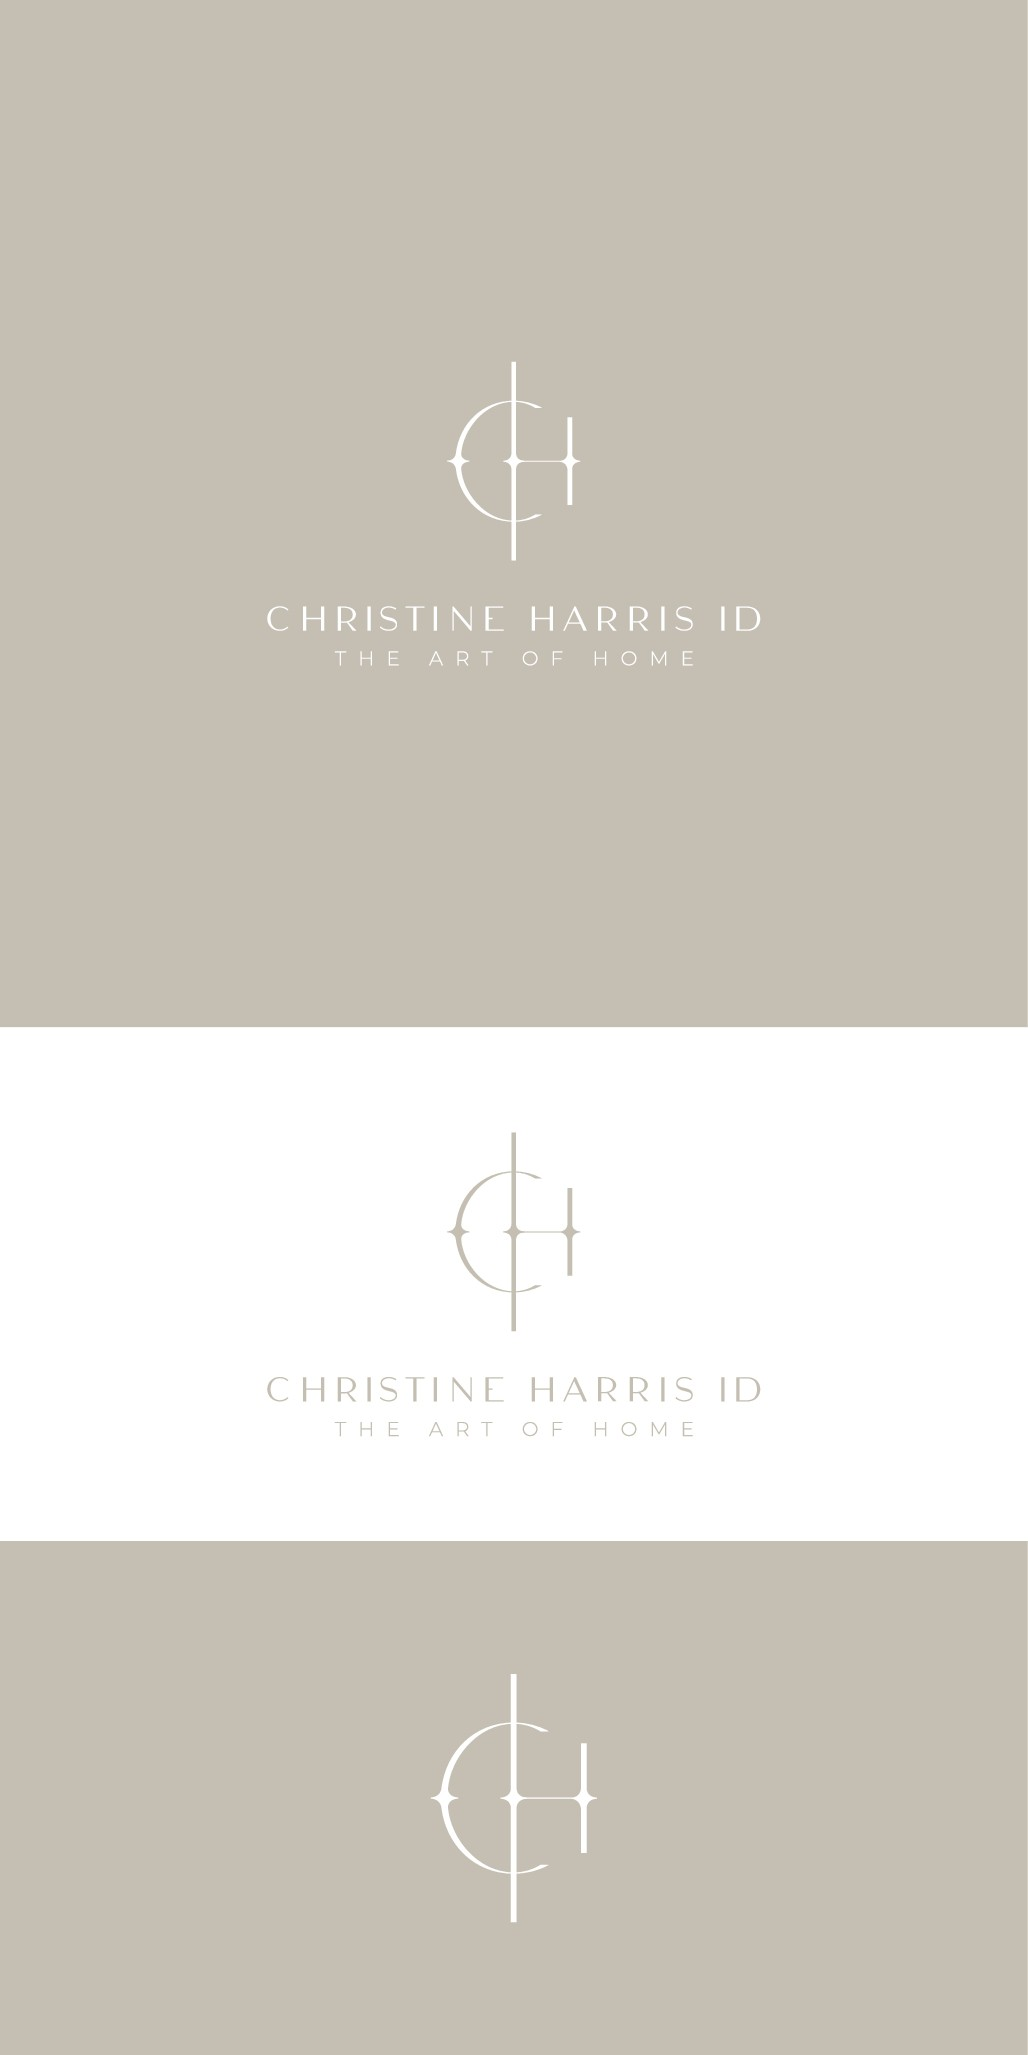 Southern California Residential Design Firm looking for Chic branding!  Bring it!